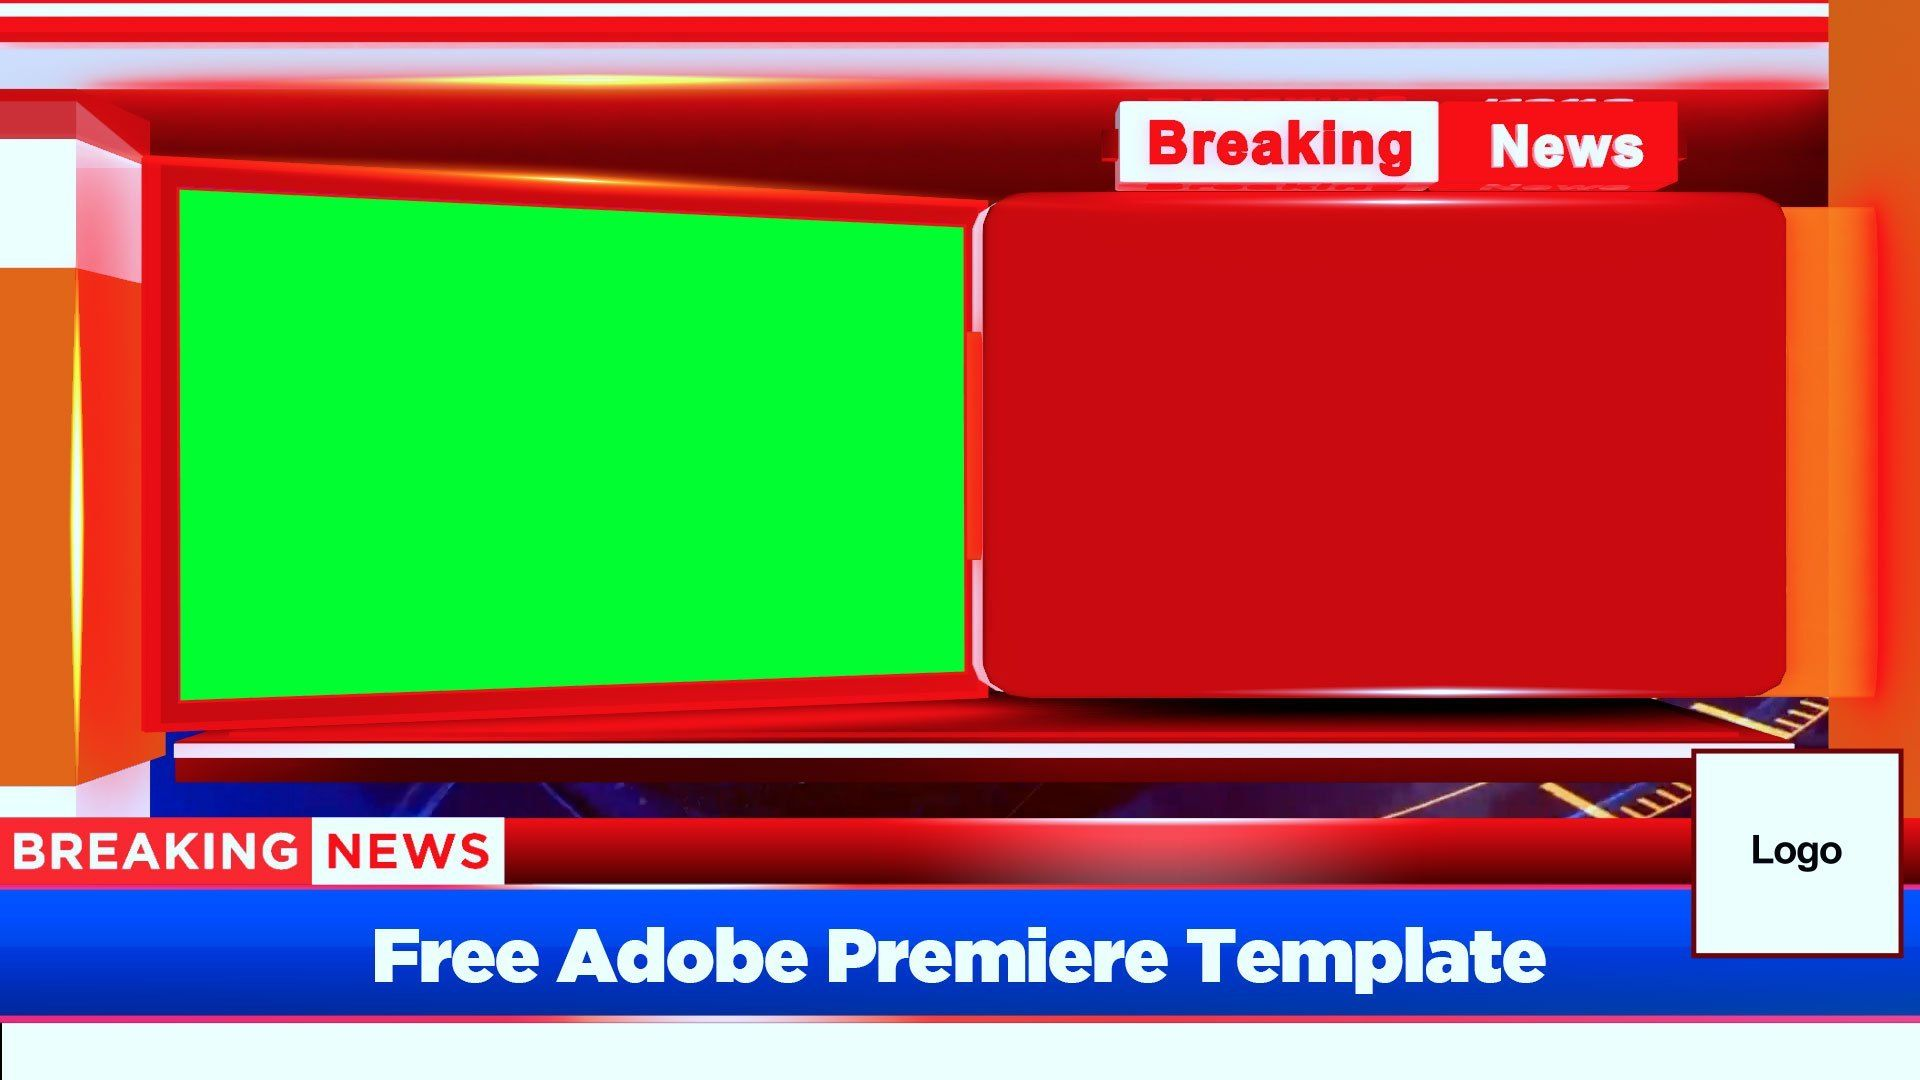 Breaking News Bumper Adobe Premiere Template Free Download Plus High Quality Png Transparent Images And Psd P Templates Photoshop Templates Free Tv Set Design